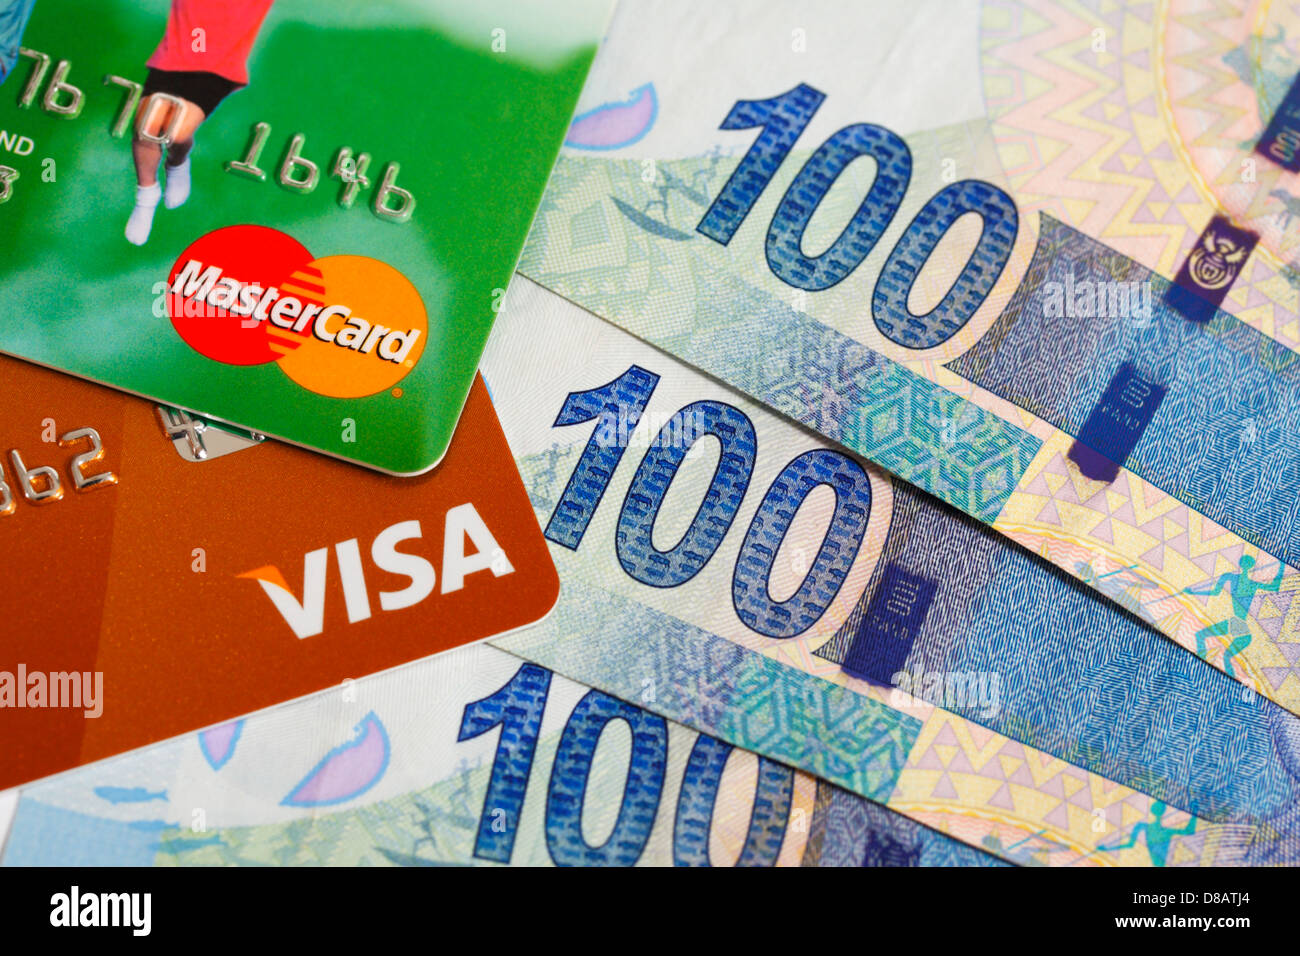 A Visa and Master Card with South African rands currency - Stock Image